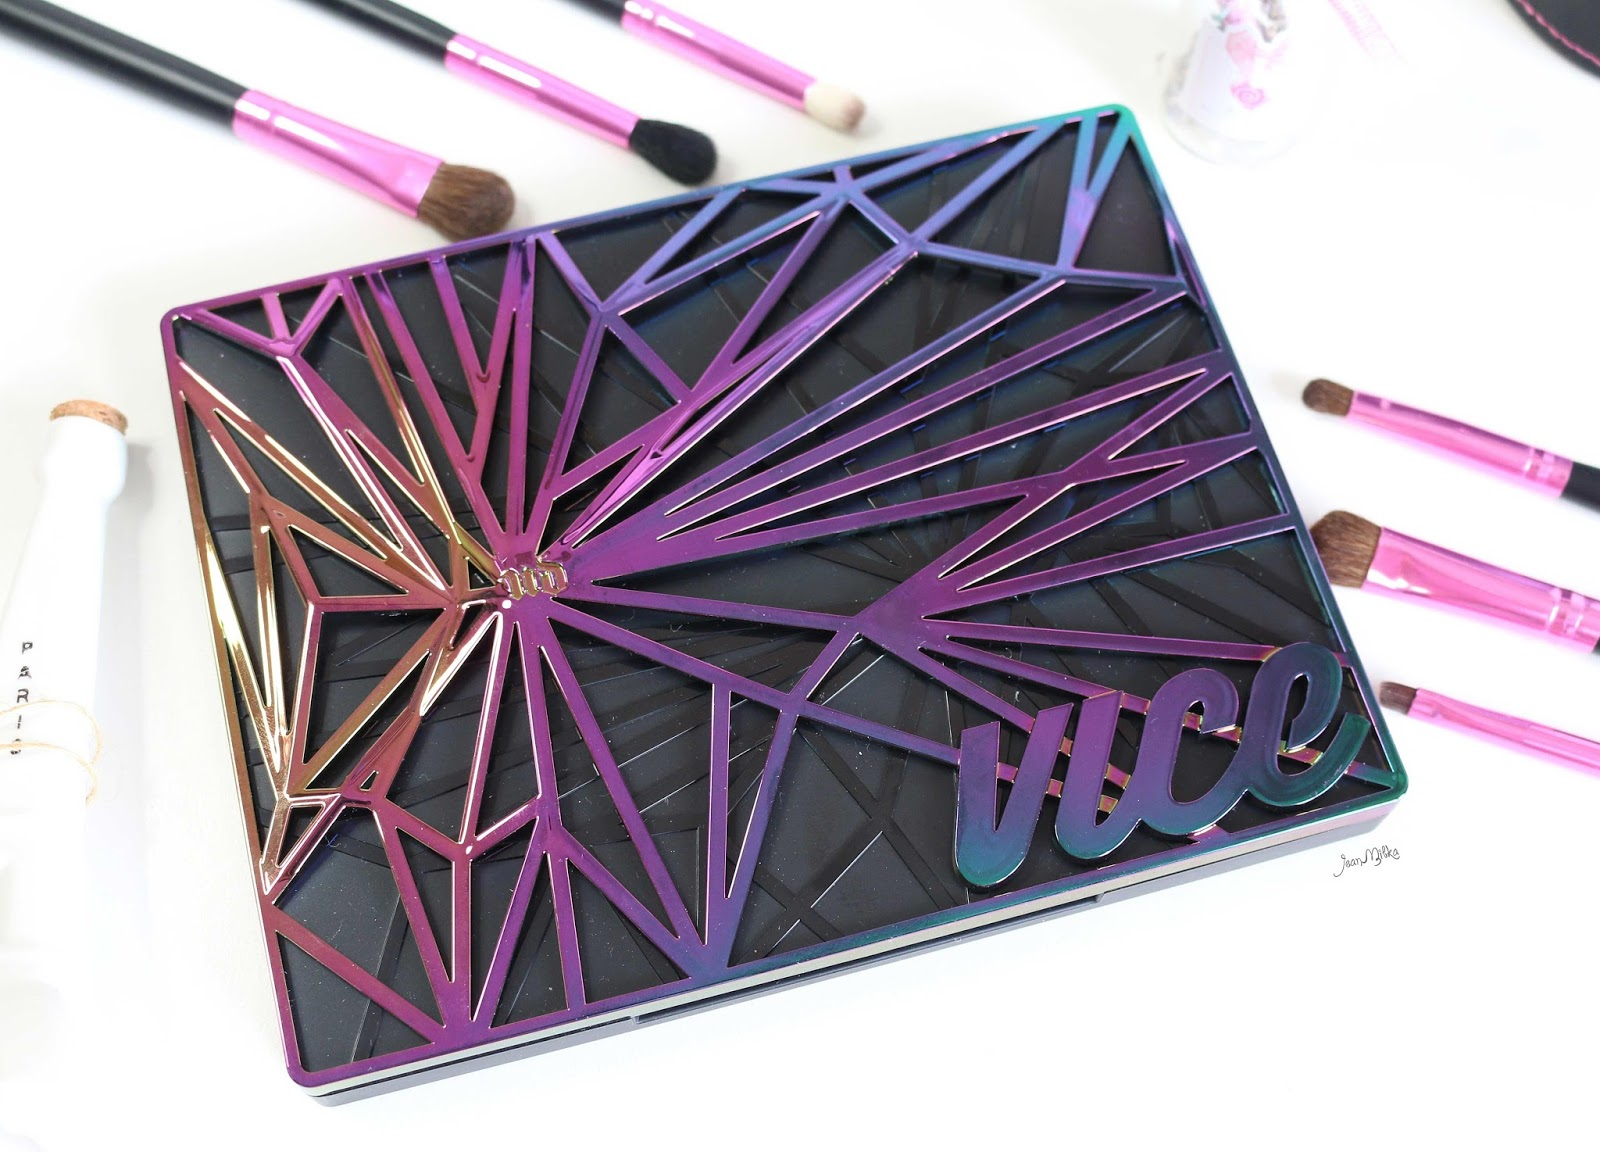 urban decay vice 4, urban decay vice, vice 4, vice palette, urban decay vice 4 palette, eyeshadow palette, review, swatches, urban decay